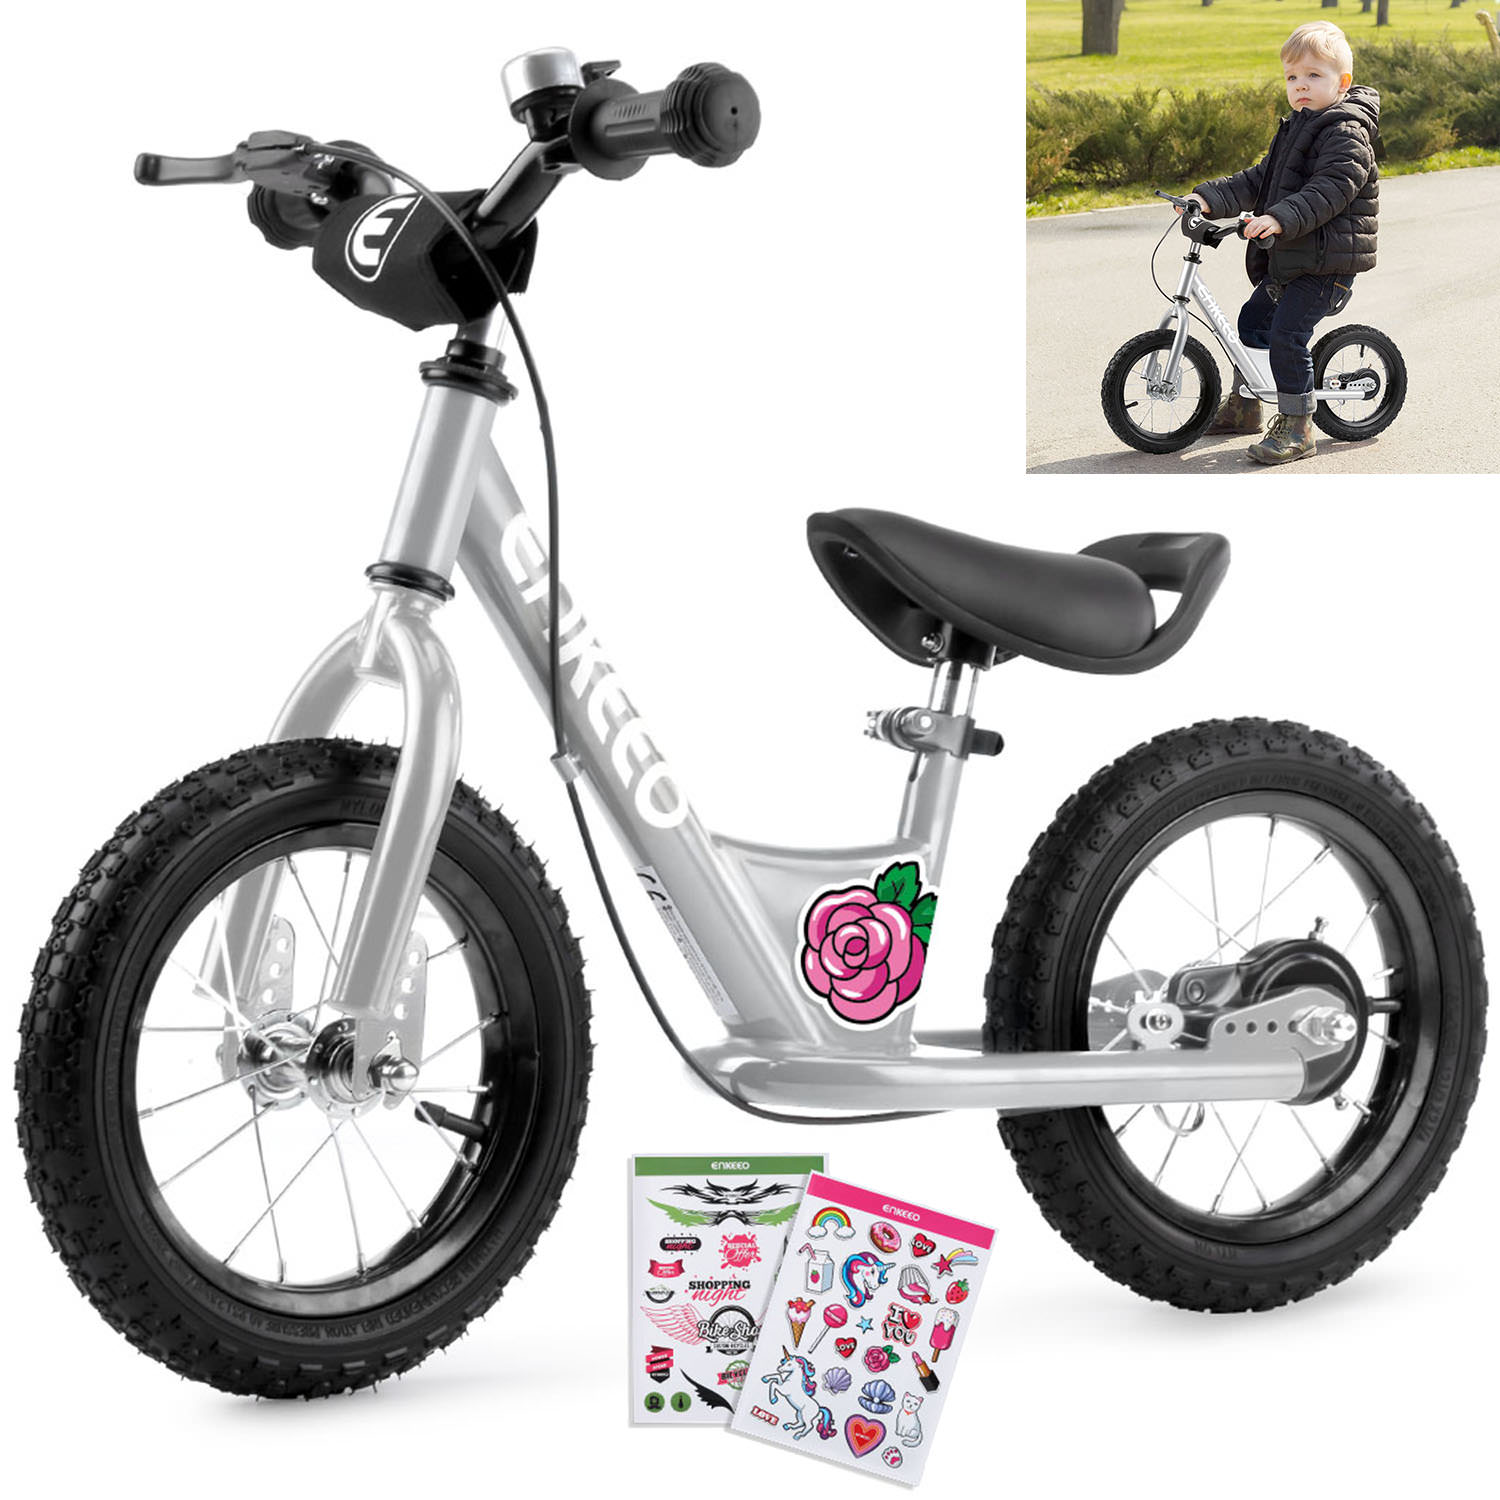 "ENKEEO 12"" Sport Balance Bike No Pedal Walking Bicycle with Carbon Steel Frame, Adjustable Handlebar and Seat, 110lbs Capacity for Kids Toddlers Ages 2 to 6 Years Old"